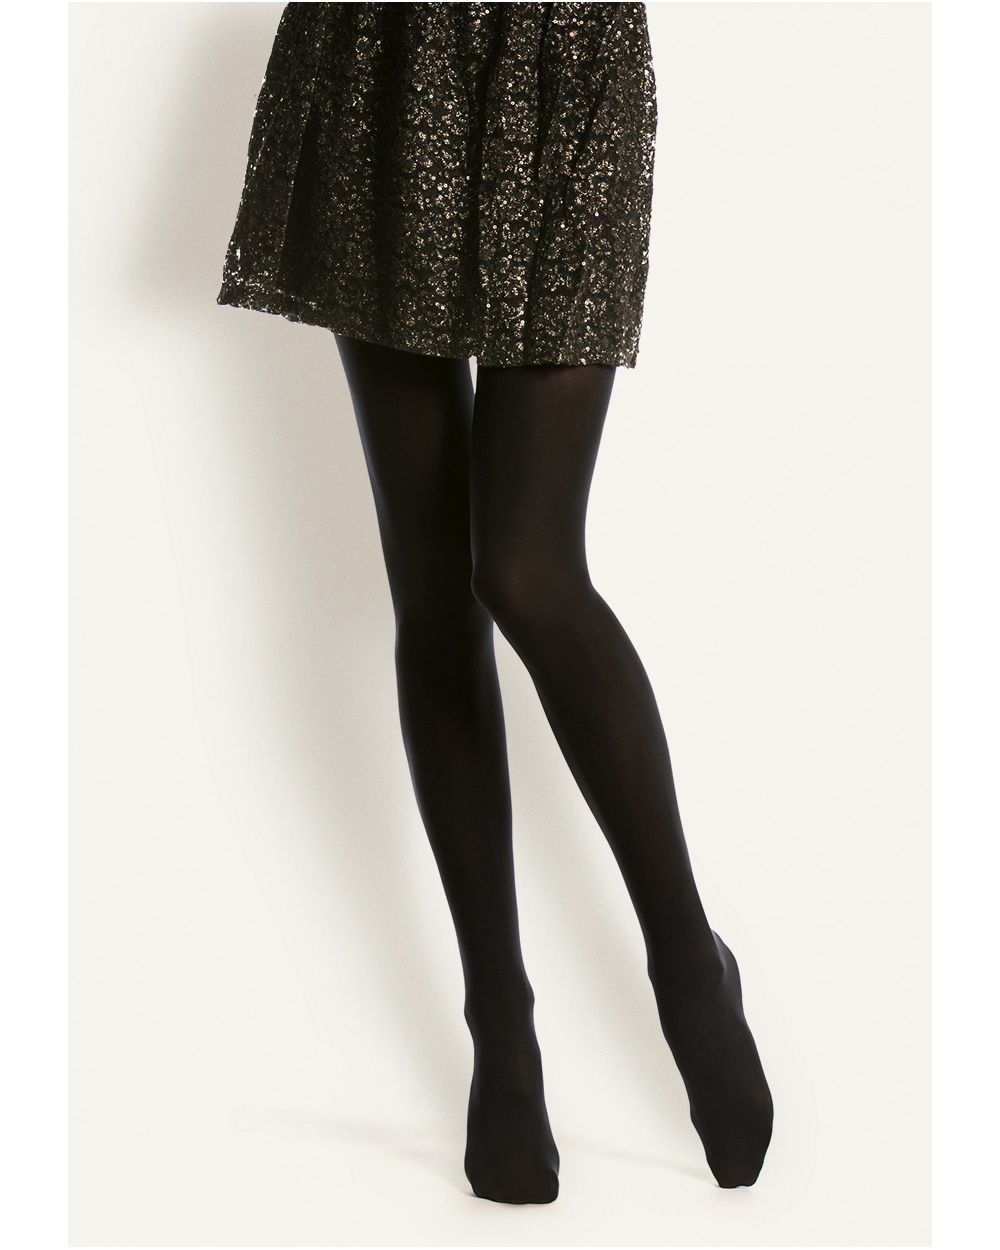 50D opaque tights